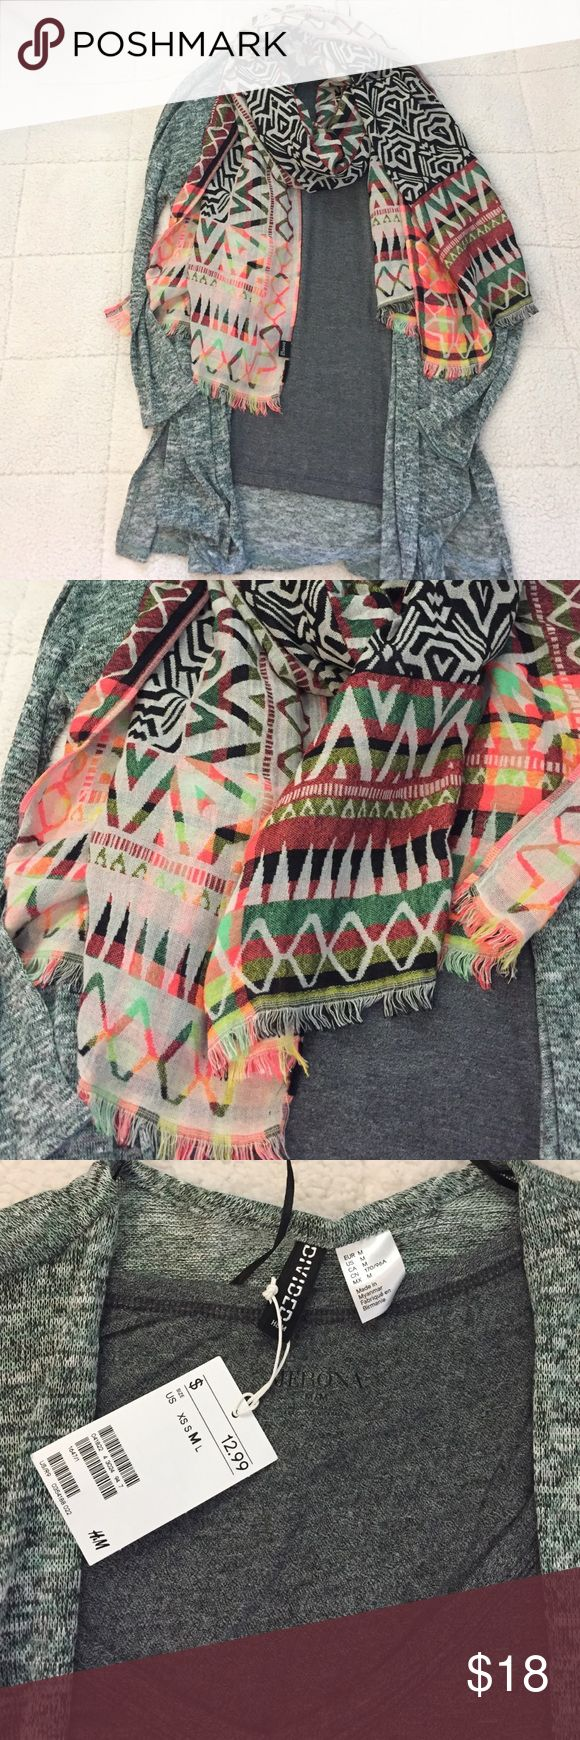 3 pc H&M divided tribal scarf cardigan lot 3 beautiful pieces. Size M nwt H&M divided cardigan in green. Size M merona brand vneck tshirt in gray. H&M divided tribal neon full scarf. Divided Sweaters Cardigans